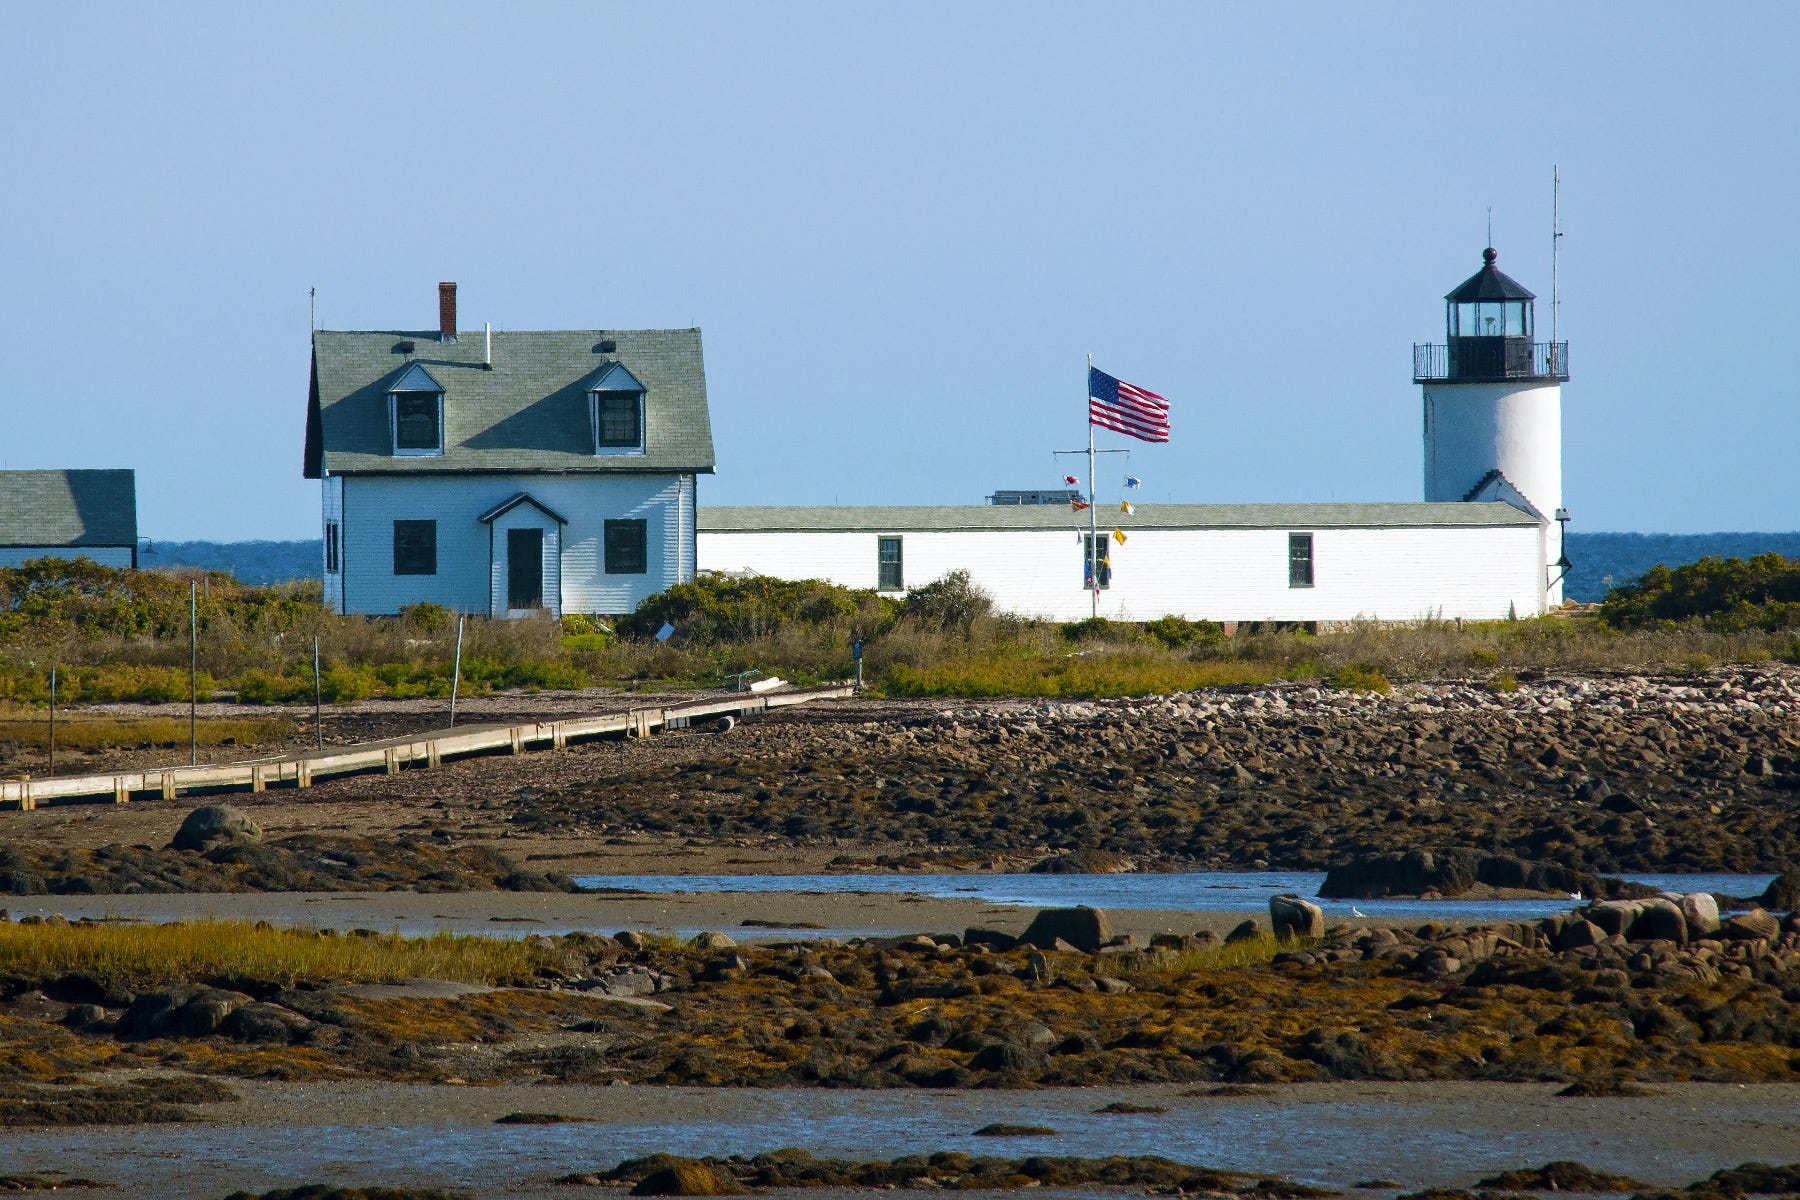 Lighthouse and american flag along the water